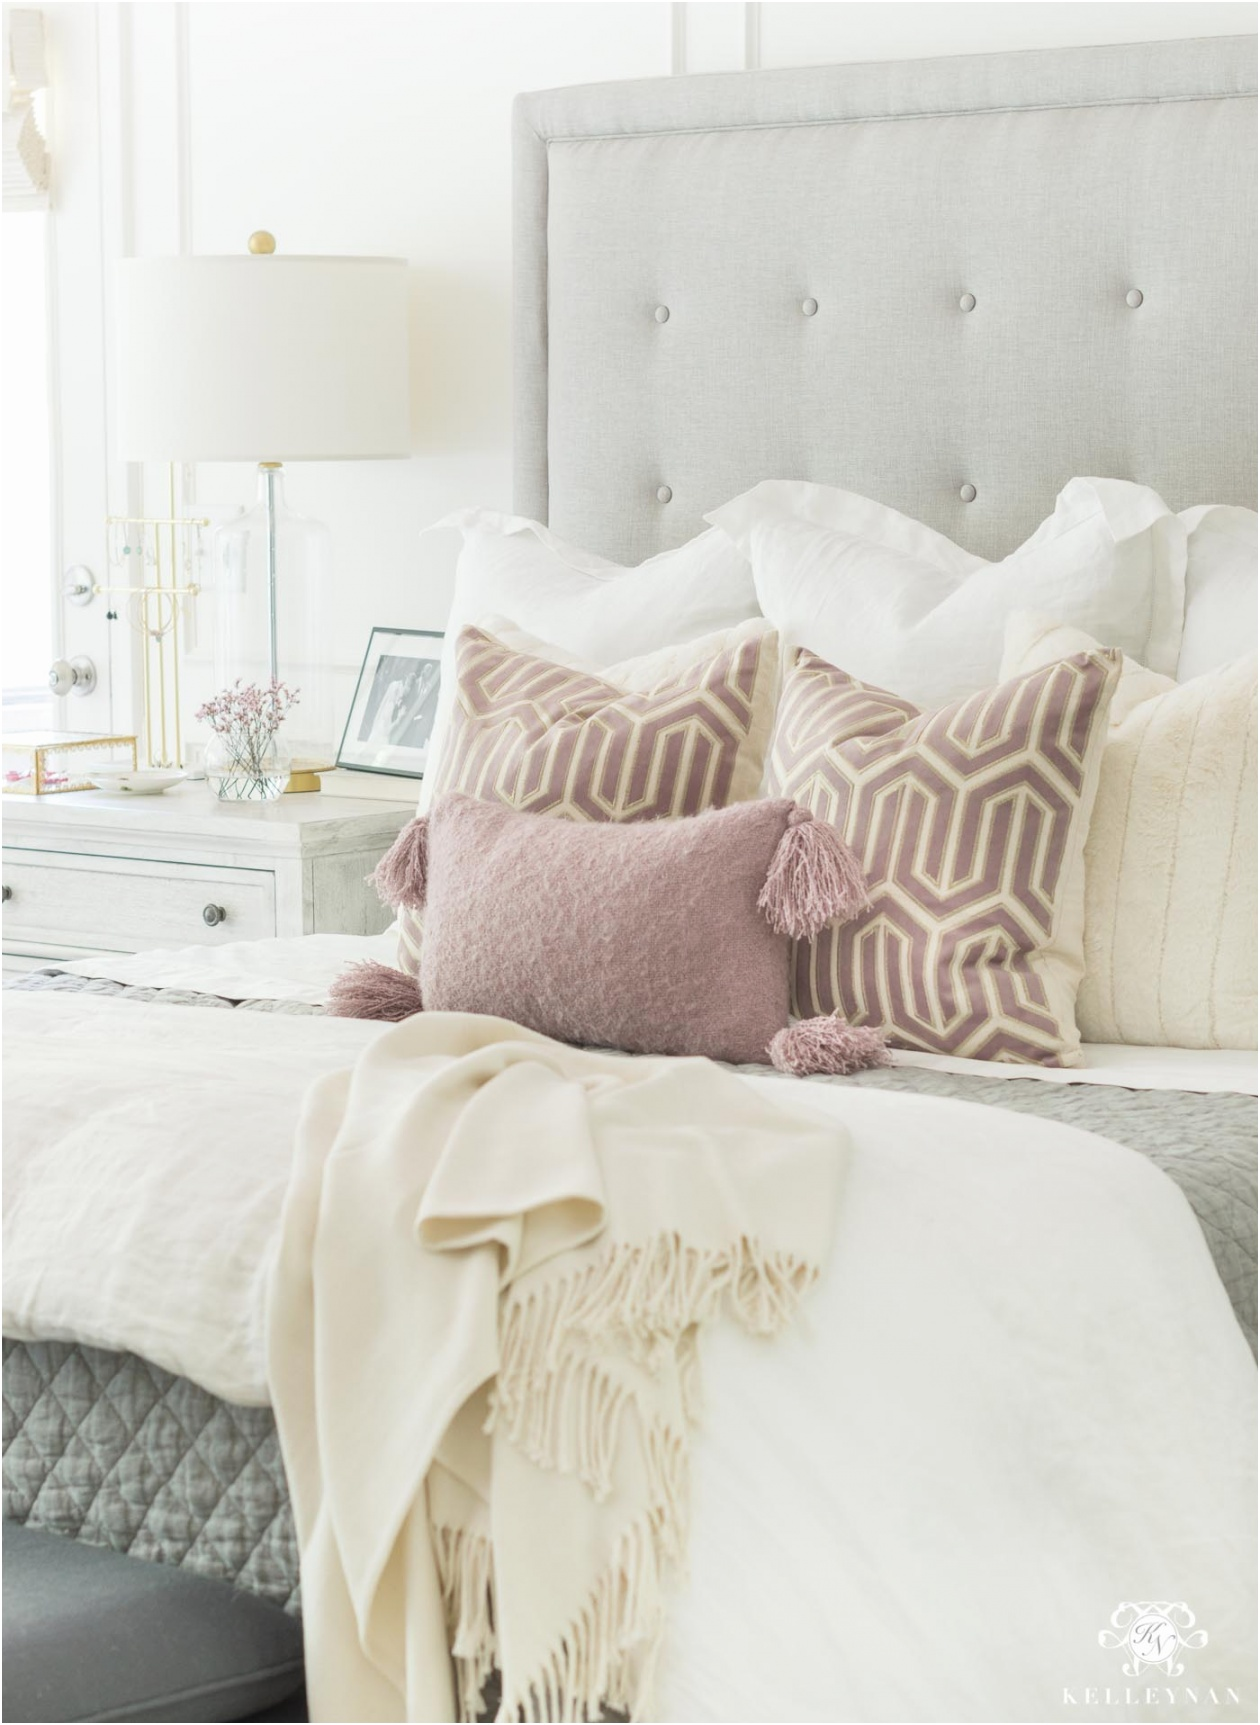 How to Mix and Match Bedroom Furniture Pieces